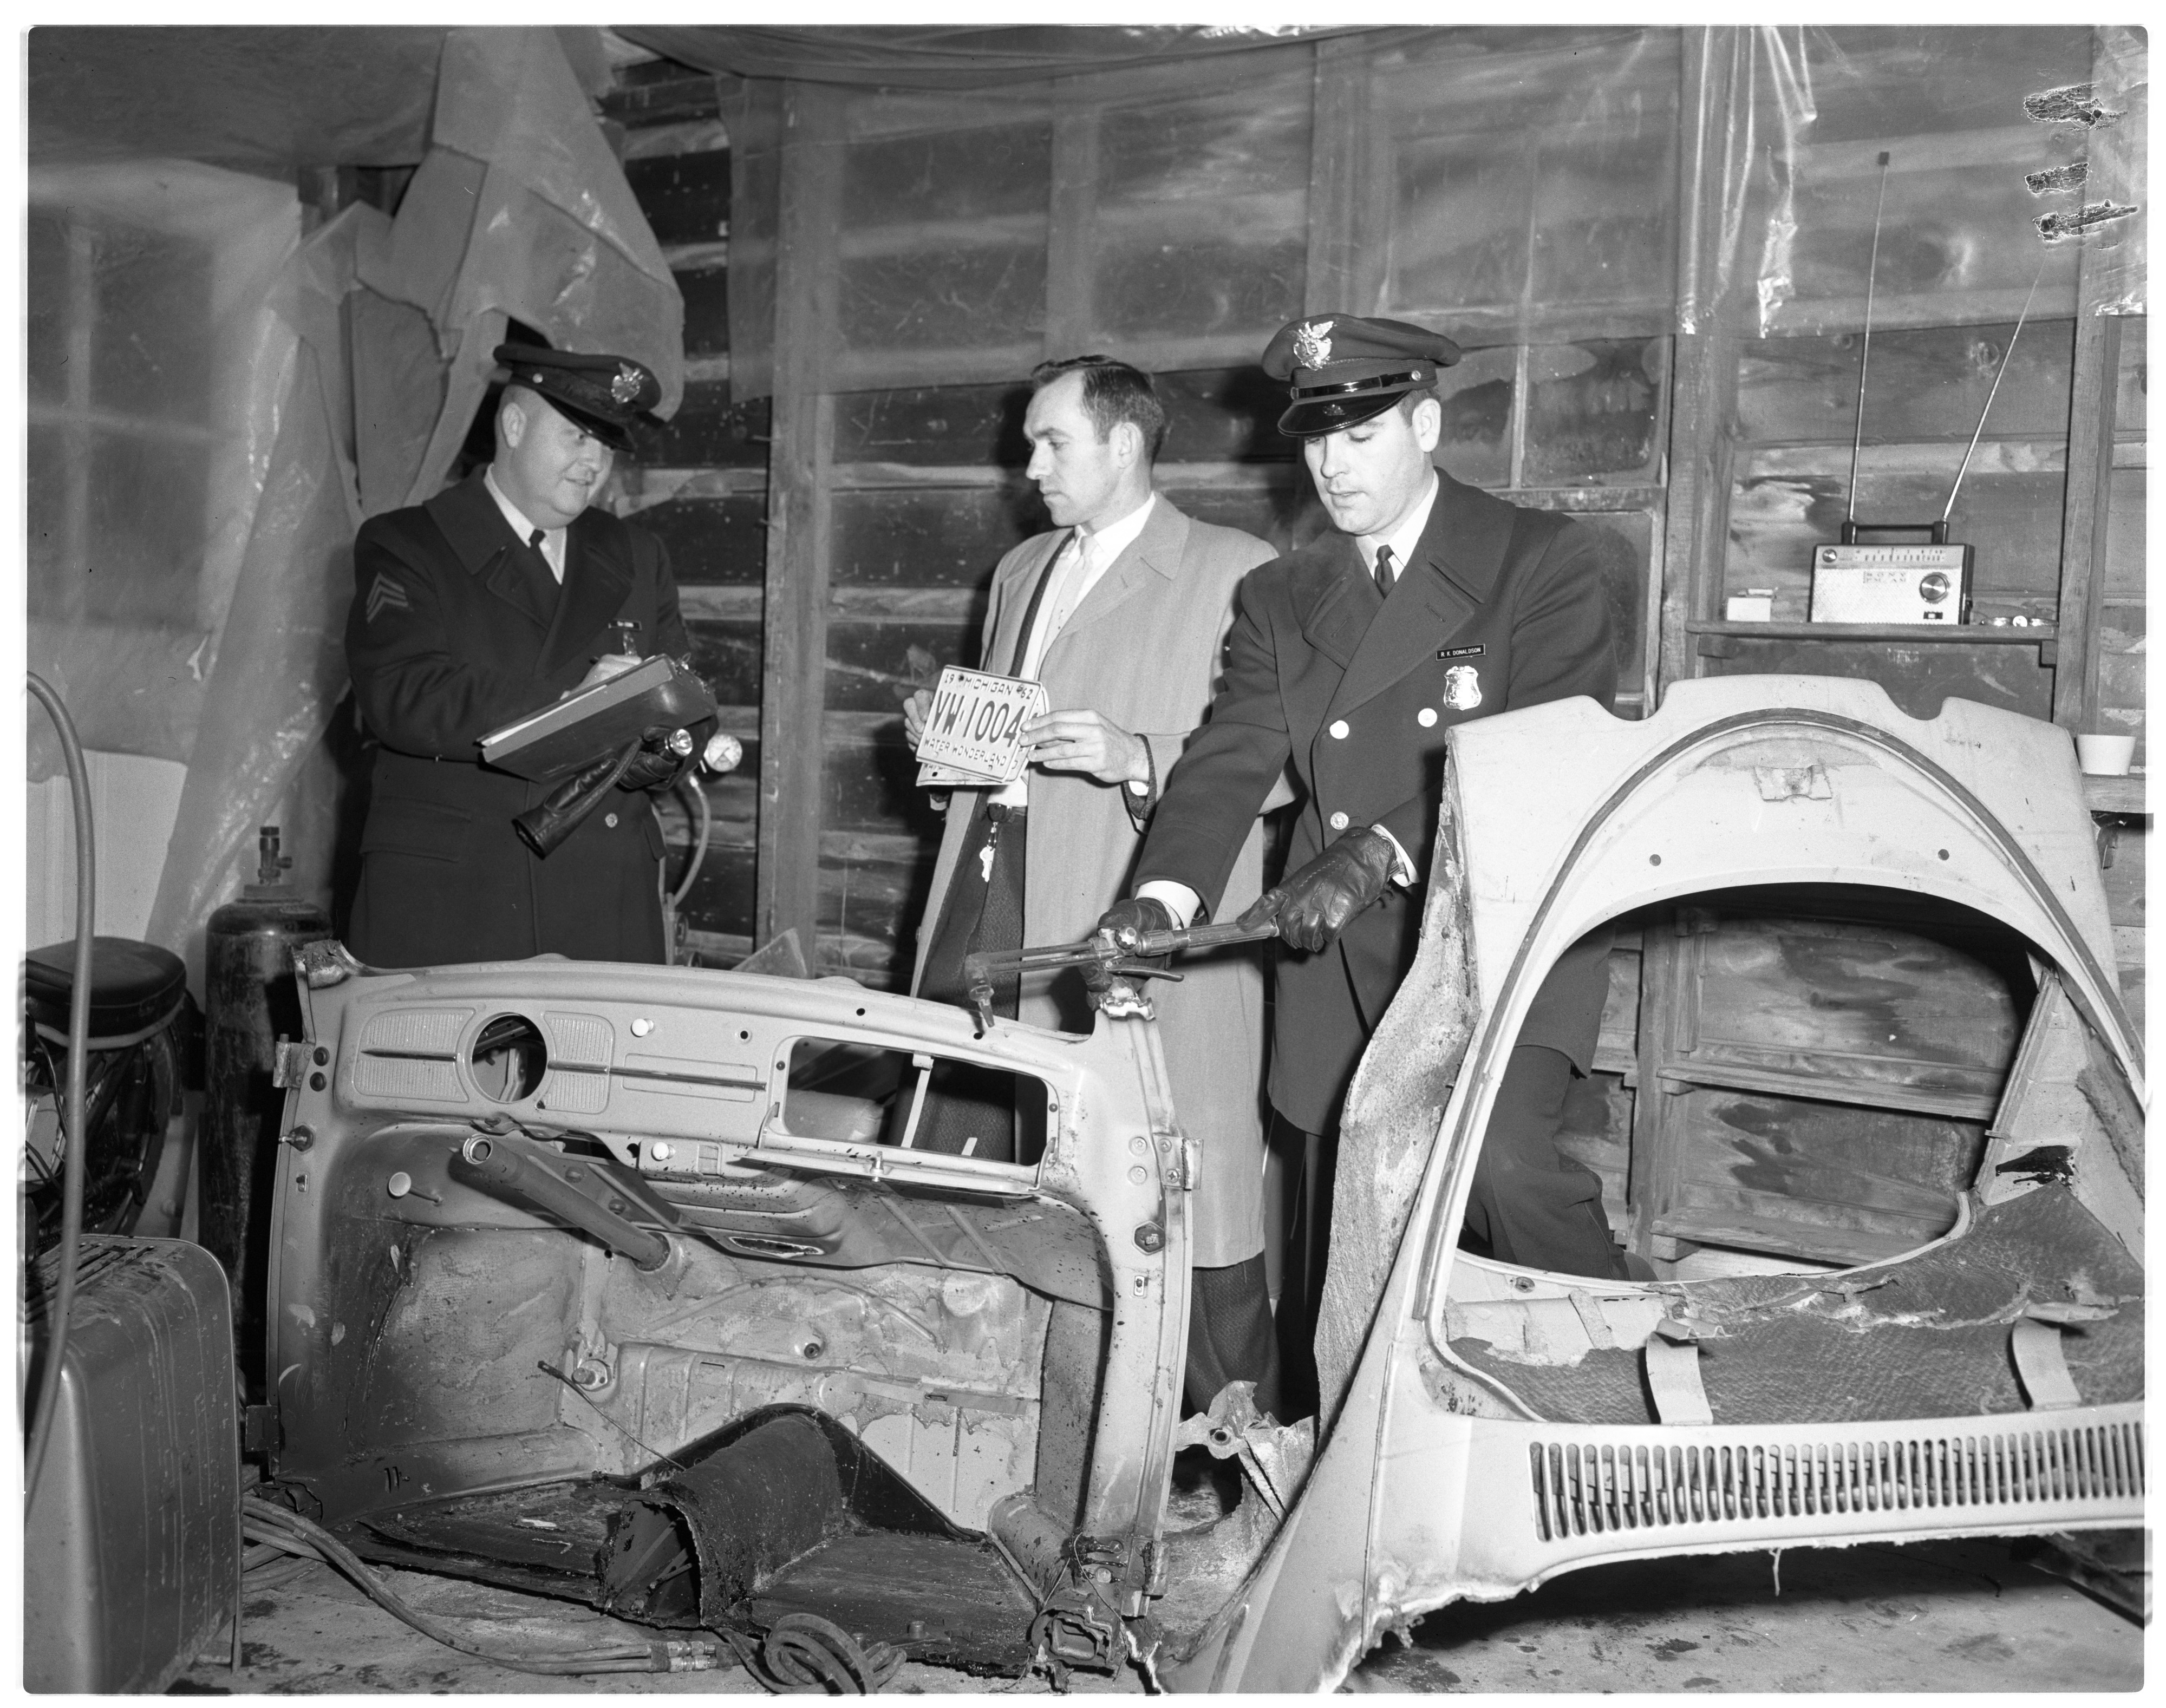 Ann Arbor Police Officers Take Inventory Of Stolen Automobile Parts, February 1963 image